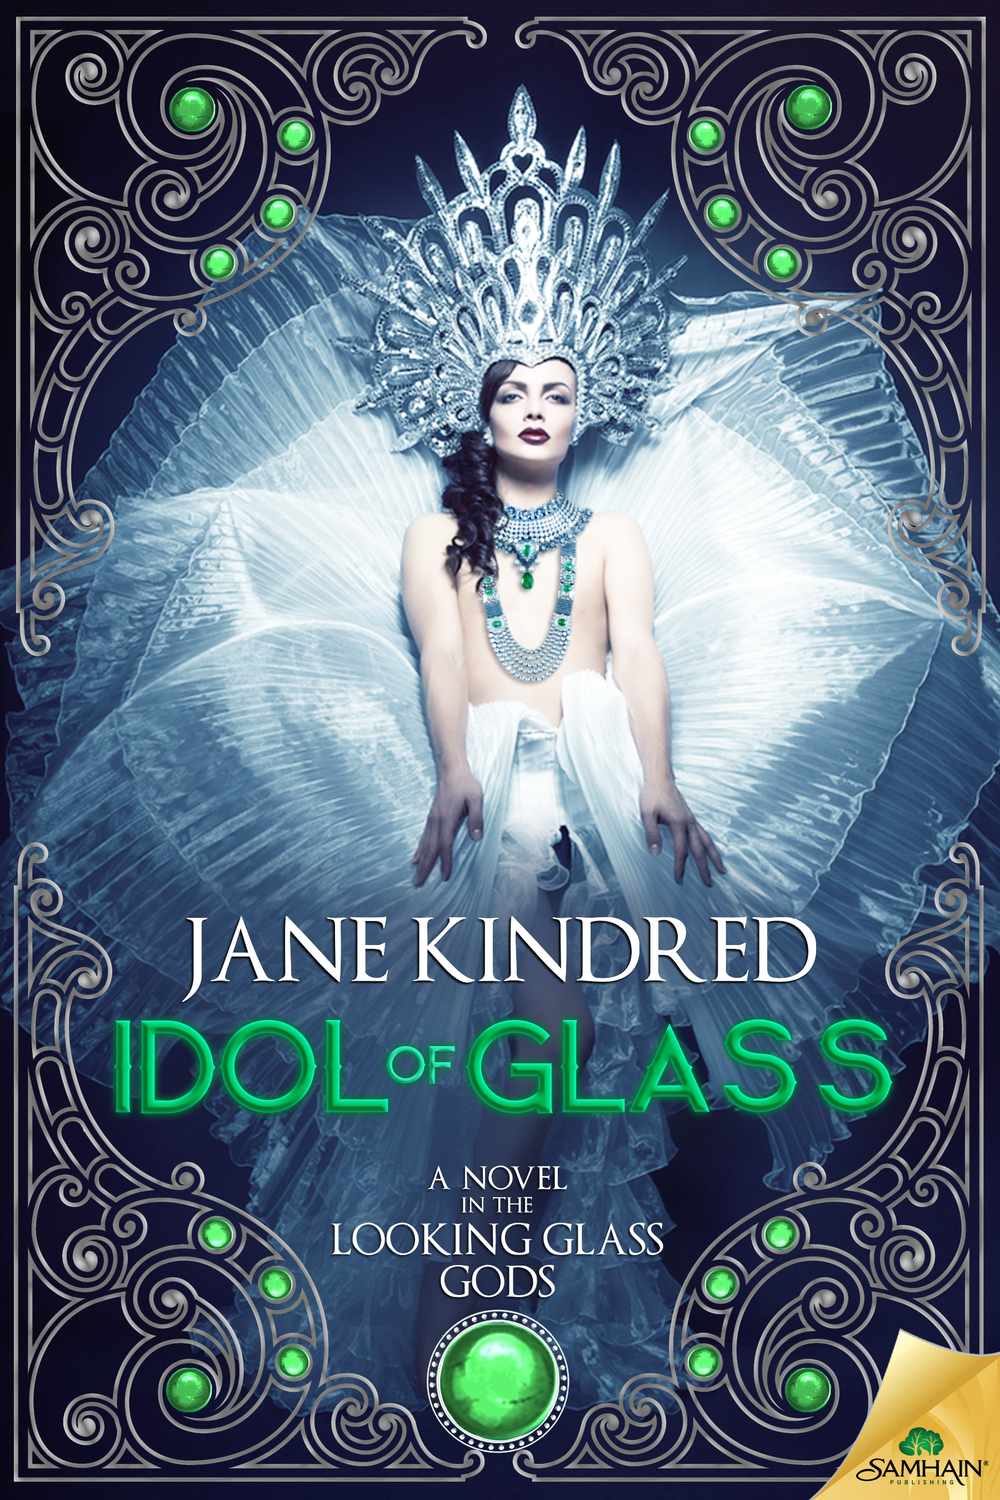 Idol of Glass (Looking Glass Gods #3)